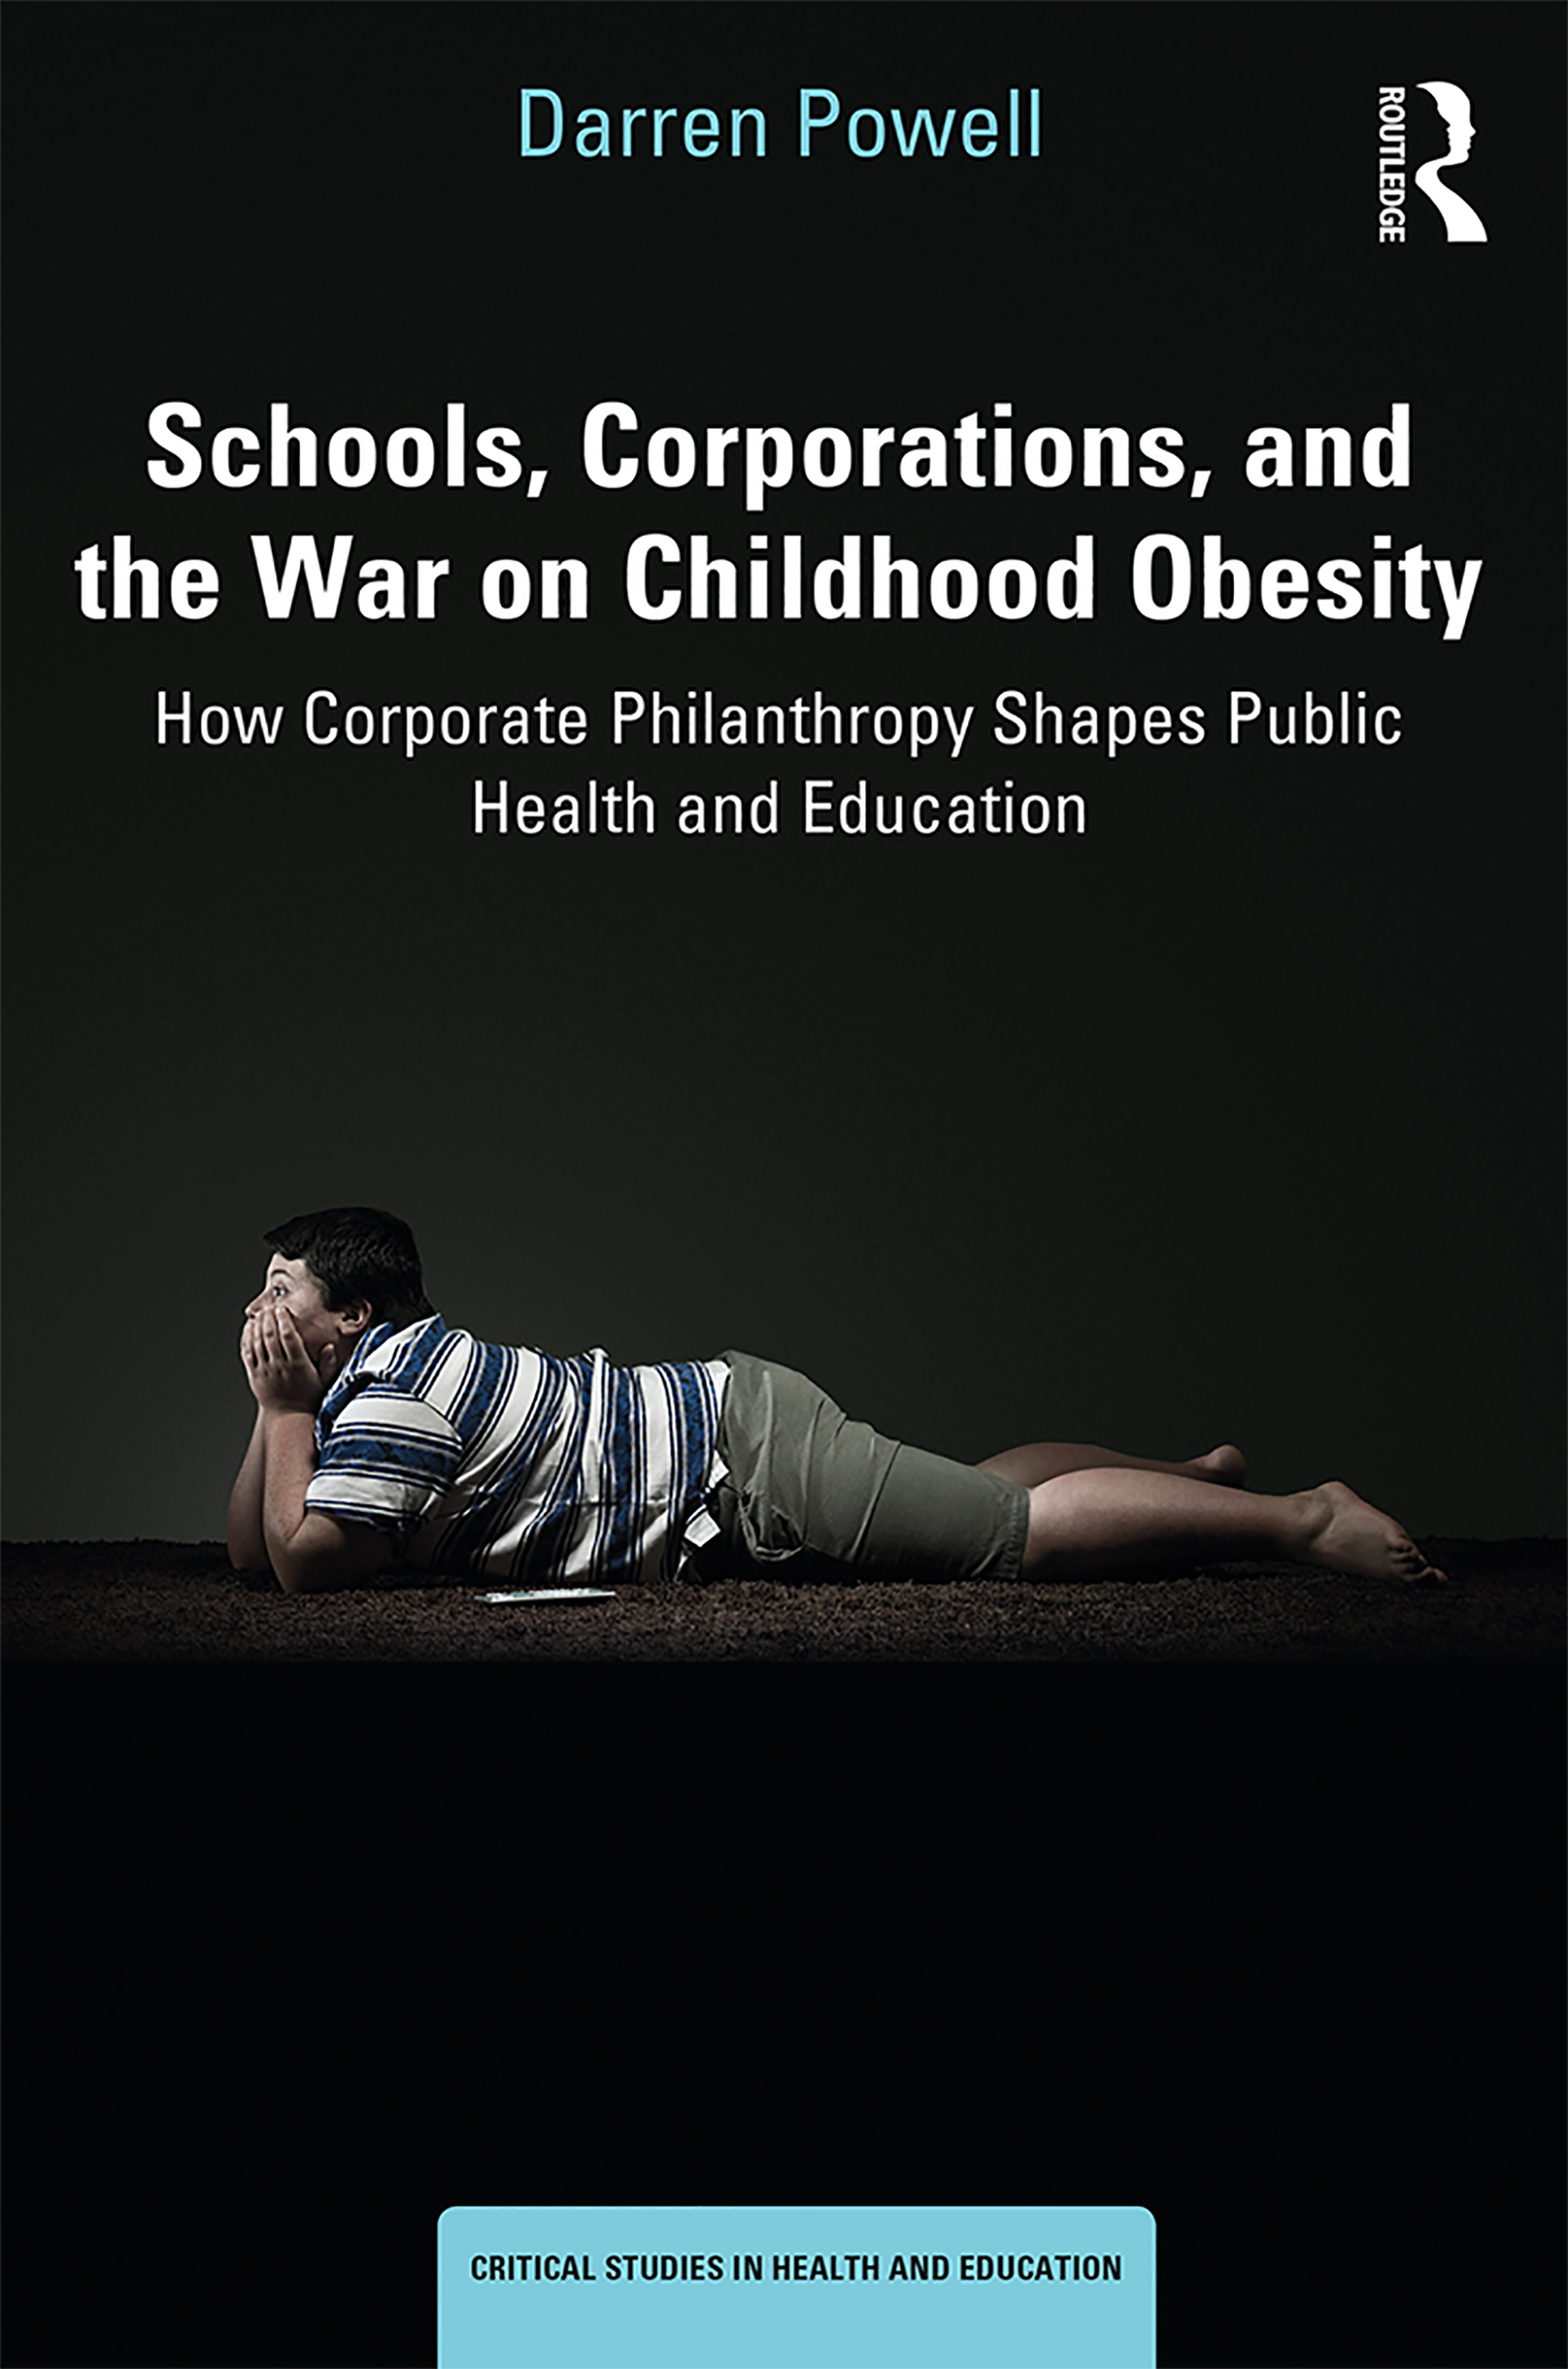 Schools, Corporations, and the War on Childhood Obesity: How Corporate Philanthropy Shapes Public Health and Education book cover